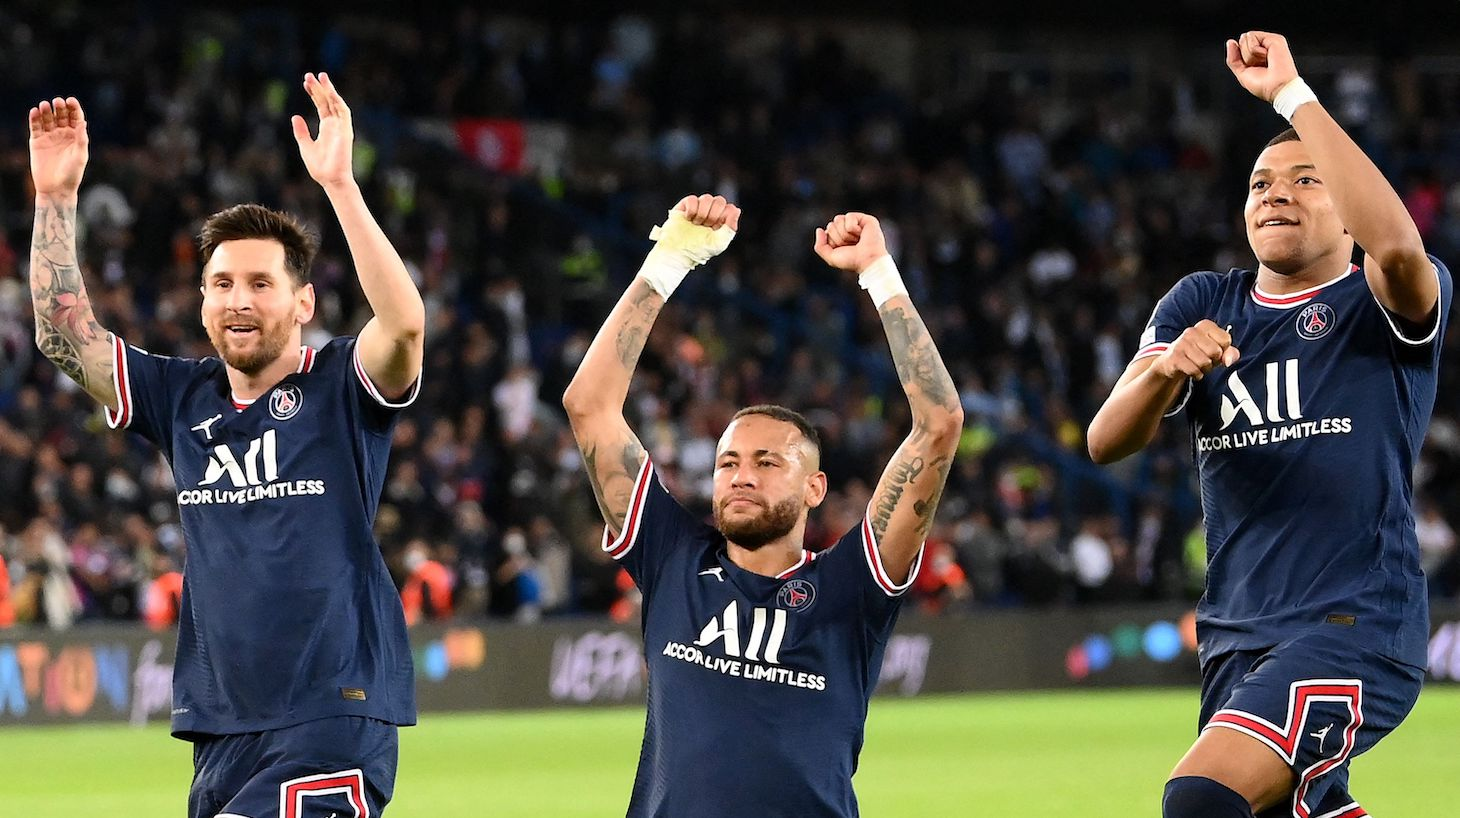 Paris Saint-Germain's Argentinian forward Lionel Messi, Paris Saint-Germain's Brazilian forward Neymar and Paris Saint-Germain's French forward Kylian Mbappe celebrate at the end of the UEFA Champions League first round group A football match between Paris Saint-Germain's (PSG) and Manchester City at The Parc des Princes stadium in Paris on September 28, 2021.